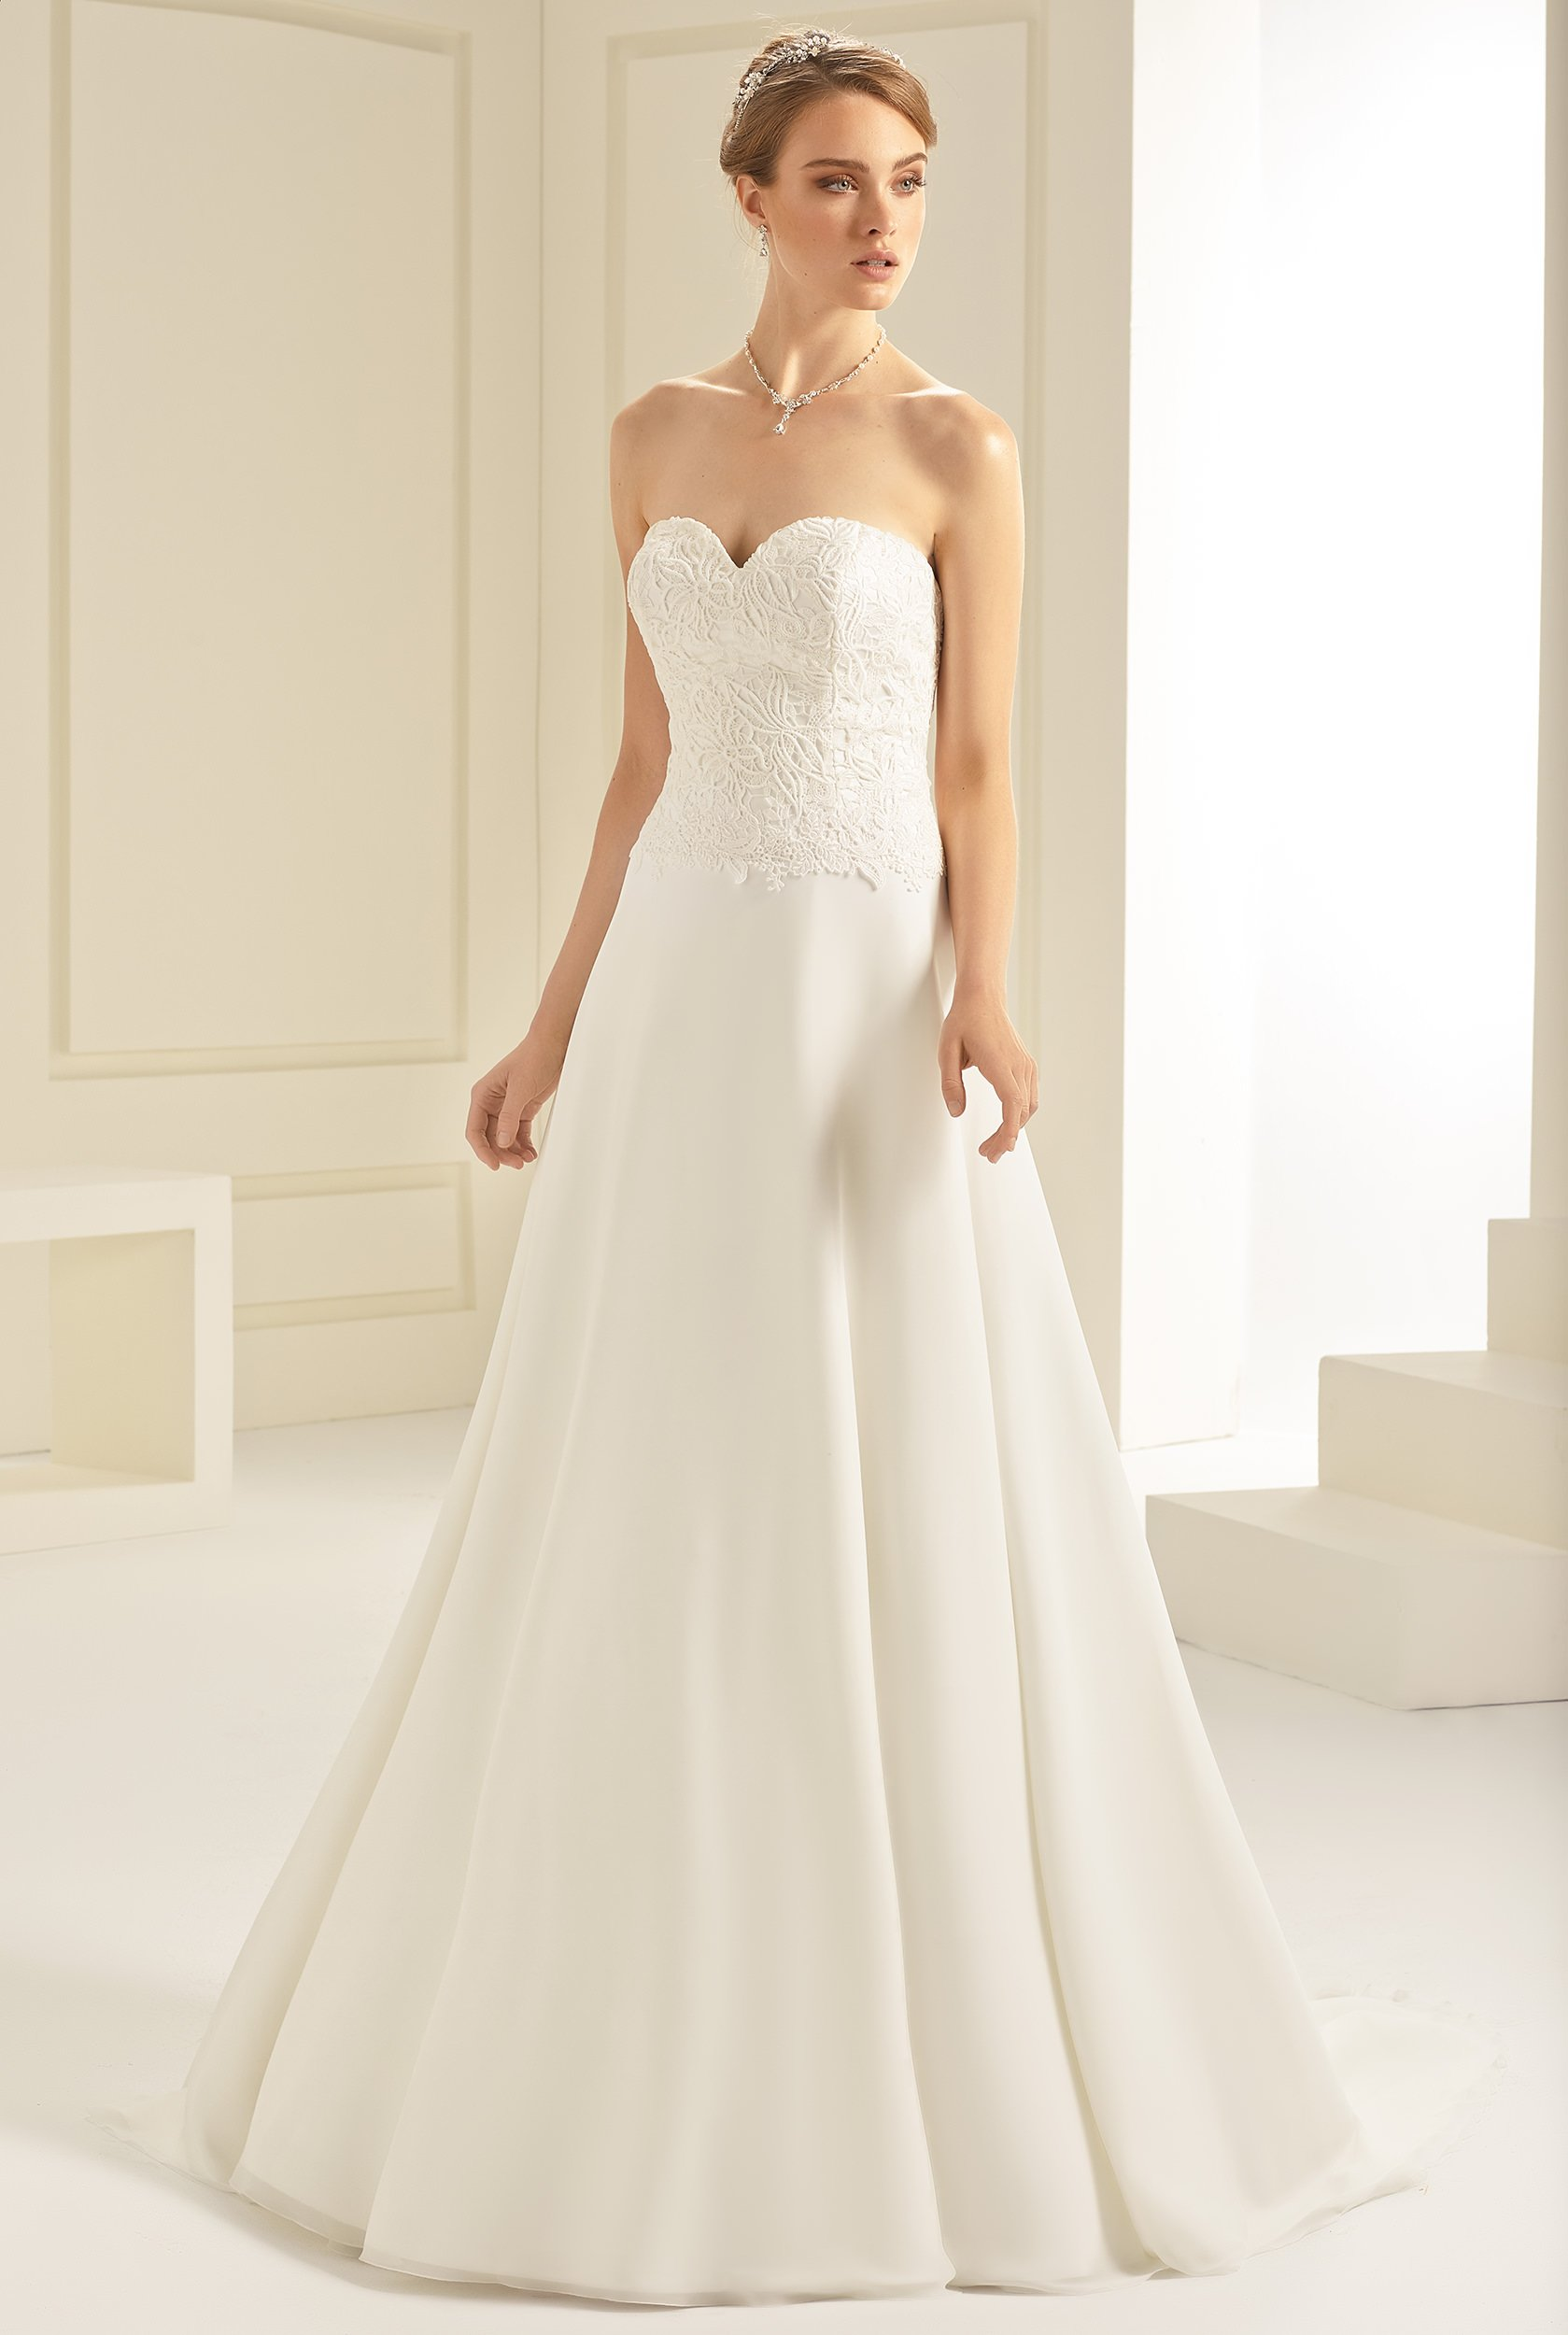 Valentina wedding dress by Copplestones Bridal